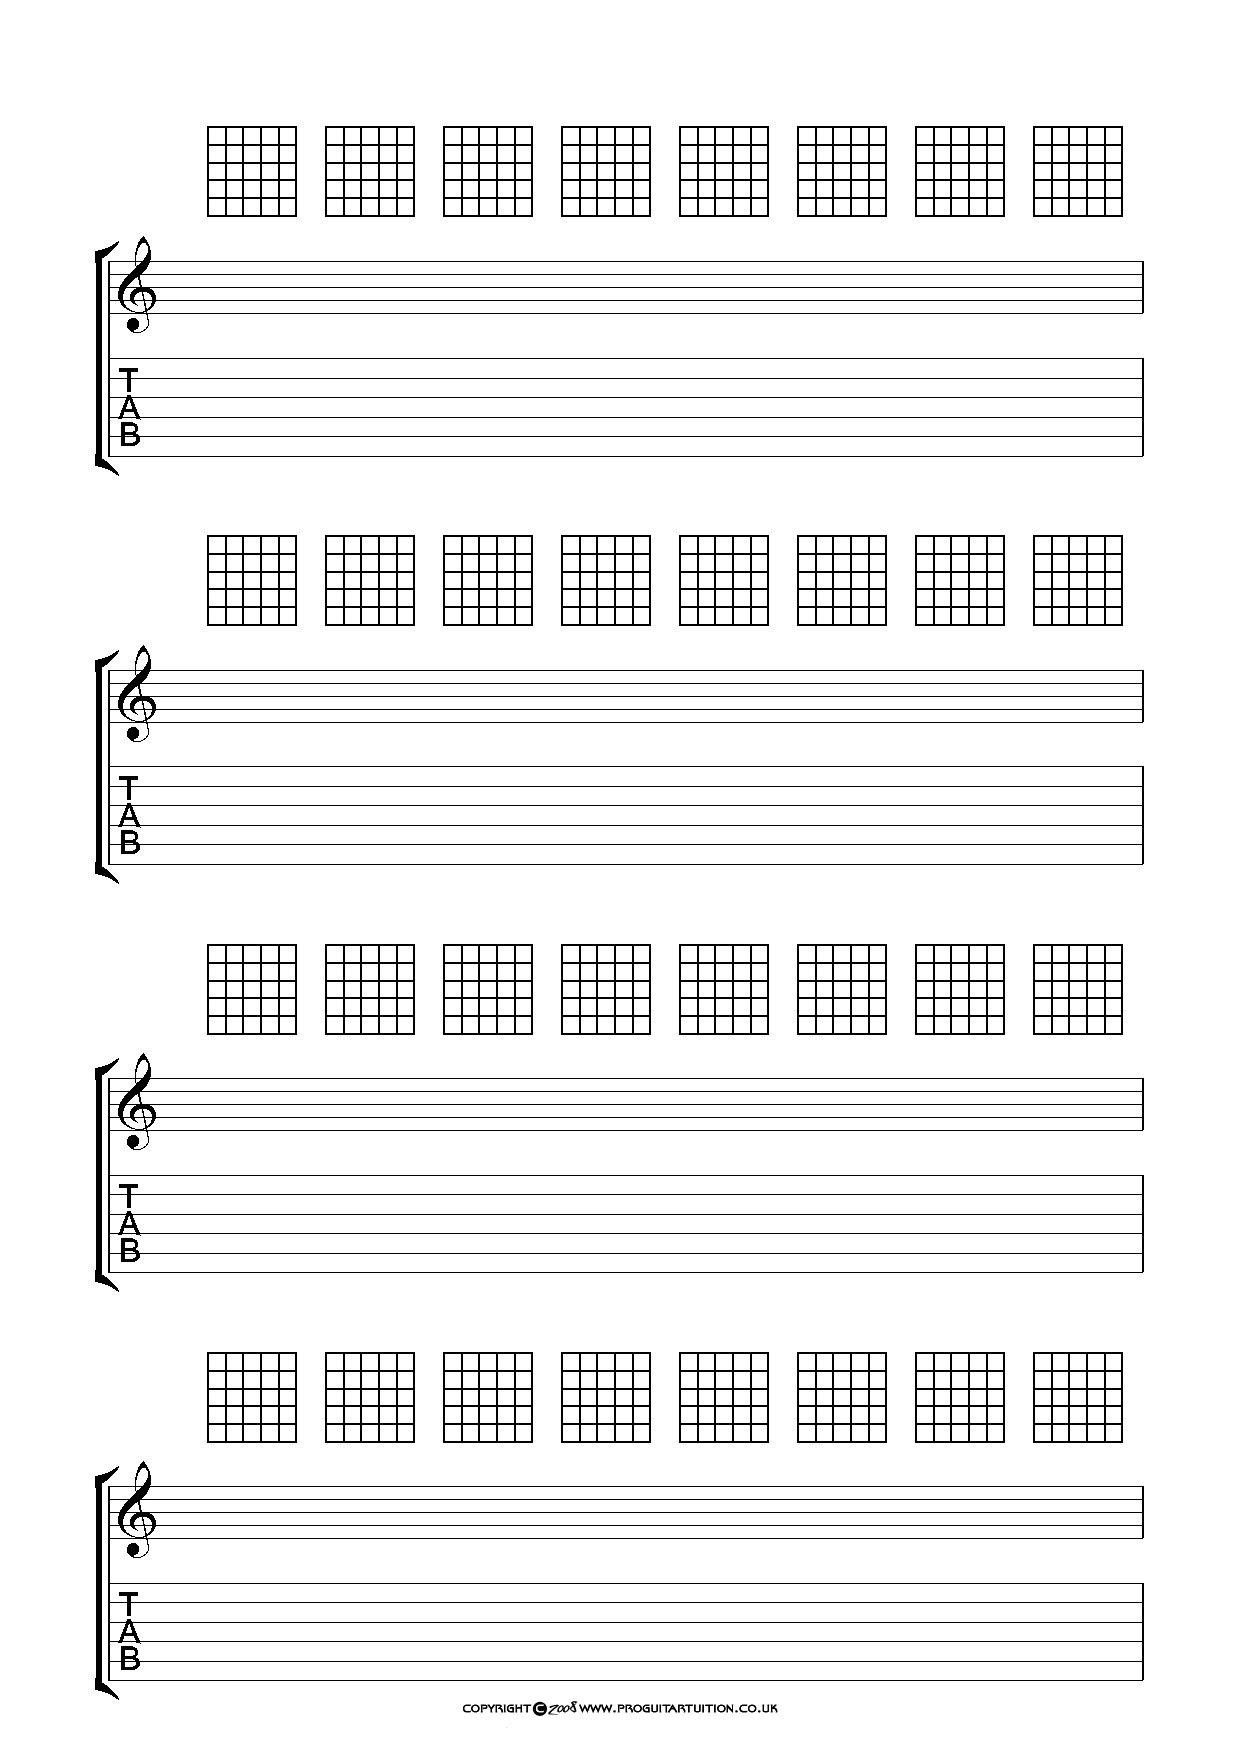 Blank Chord Sheets Google Search Music In 2018 Pinterest